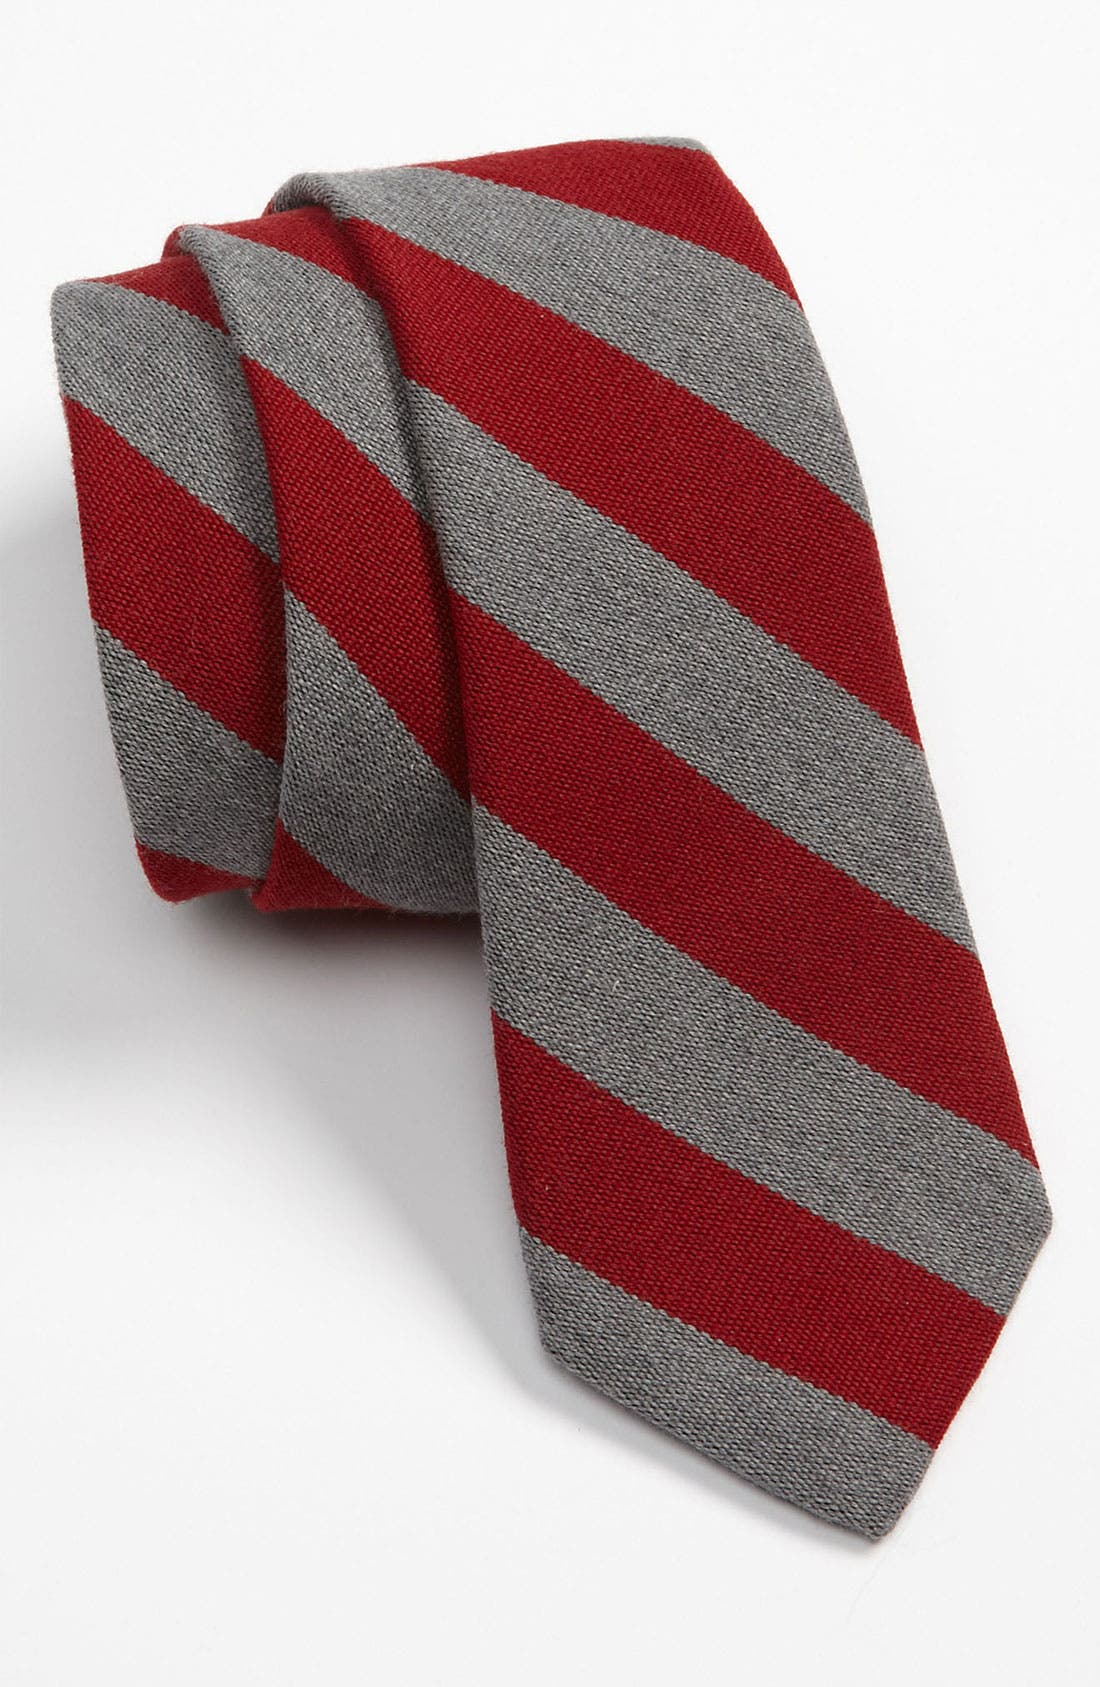 Alternate Image 1 Selected - Fahlgren Woven Tie